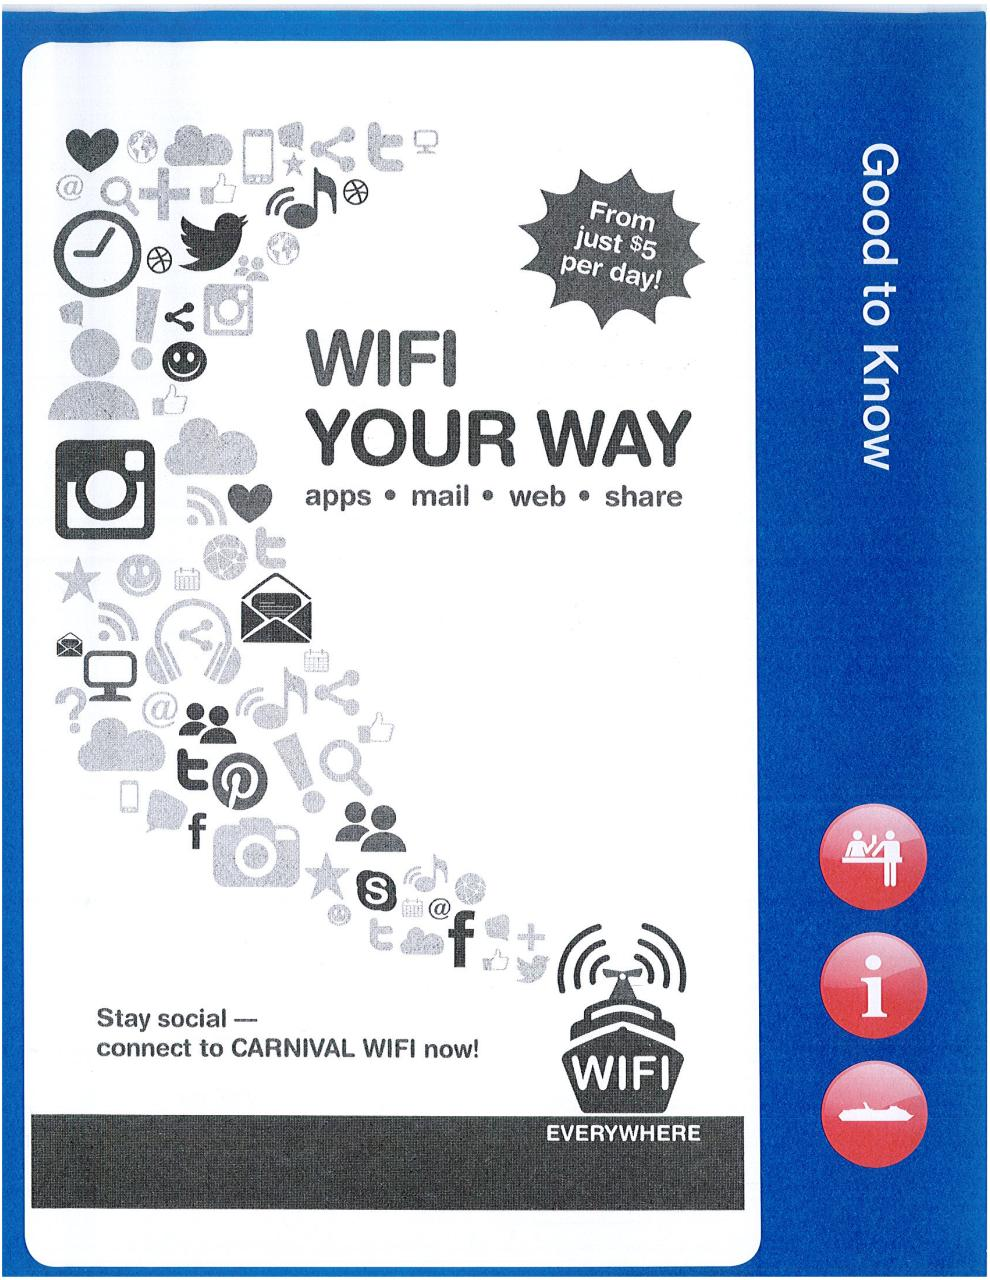 Carnival Victory 2016-03-20 WiFi Your Way.pdf - page 1/2